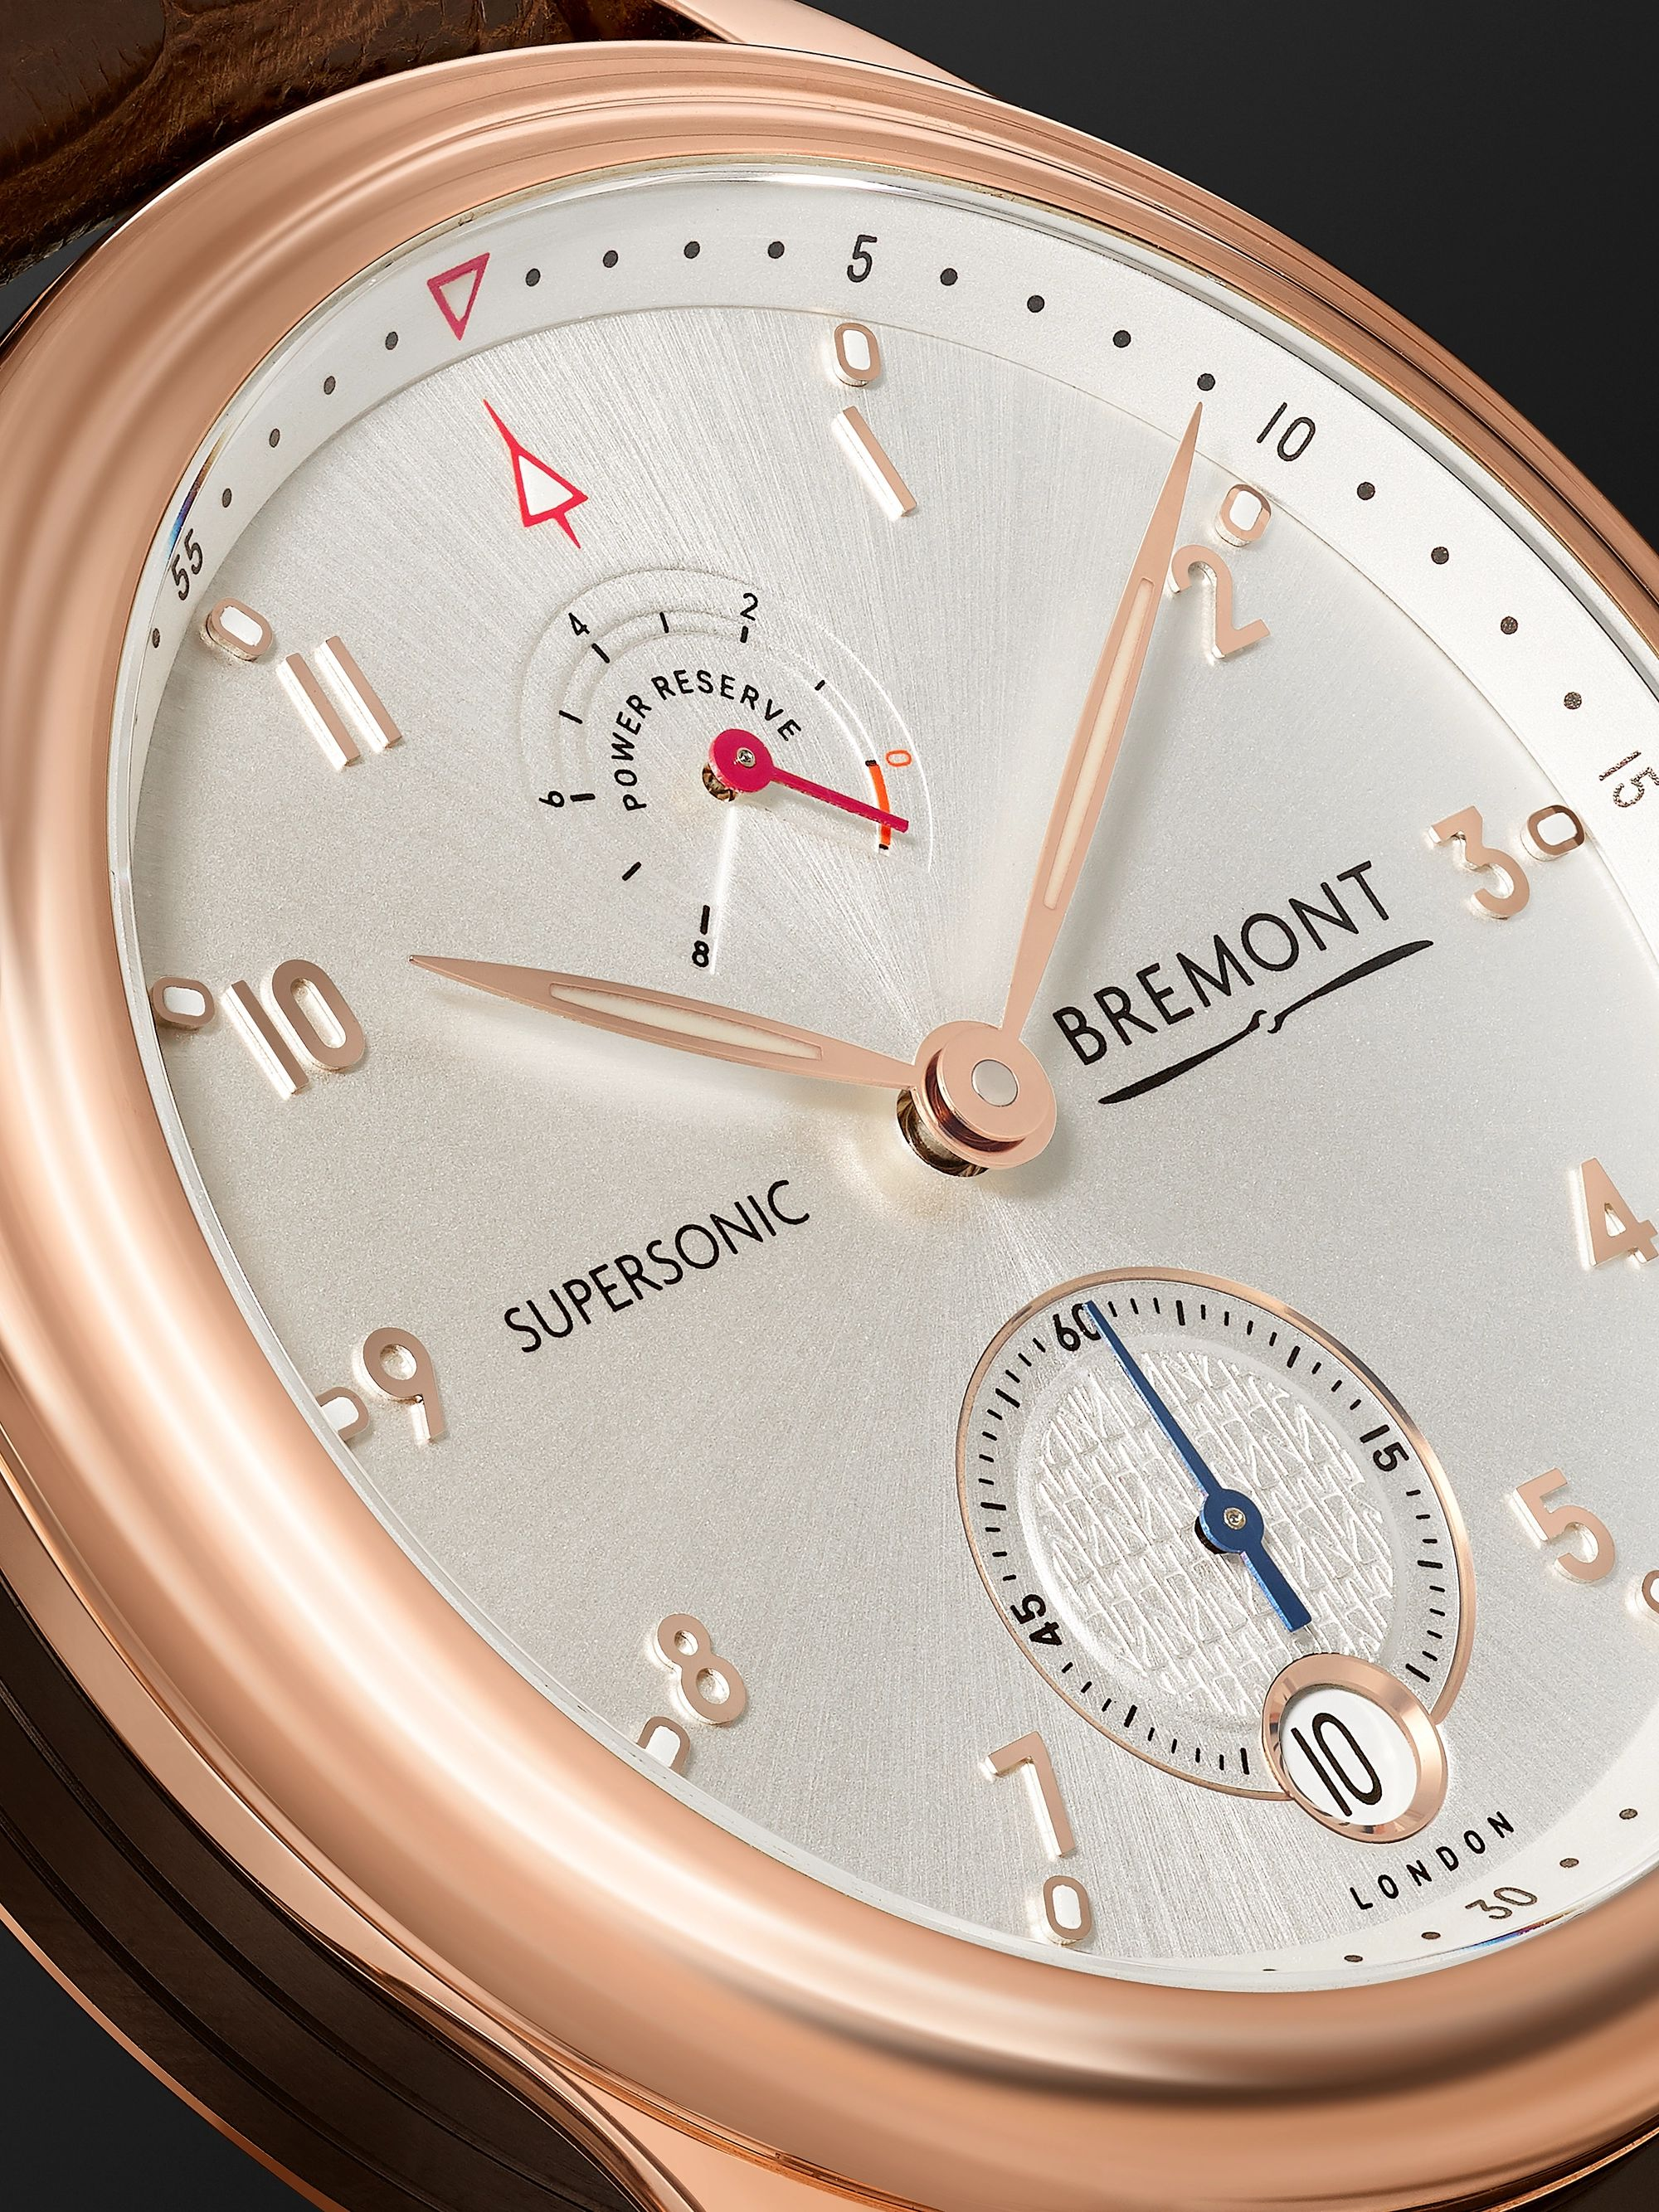 Bremont Supersonic Limited Edition Hand-Wound 43mm 18-Karat Rose Gold and Alligator Watch, Ref. No. 85/100